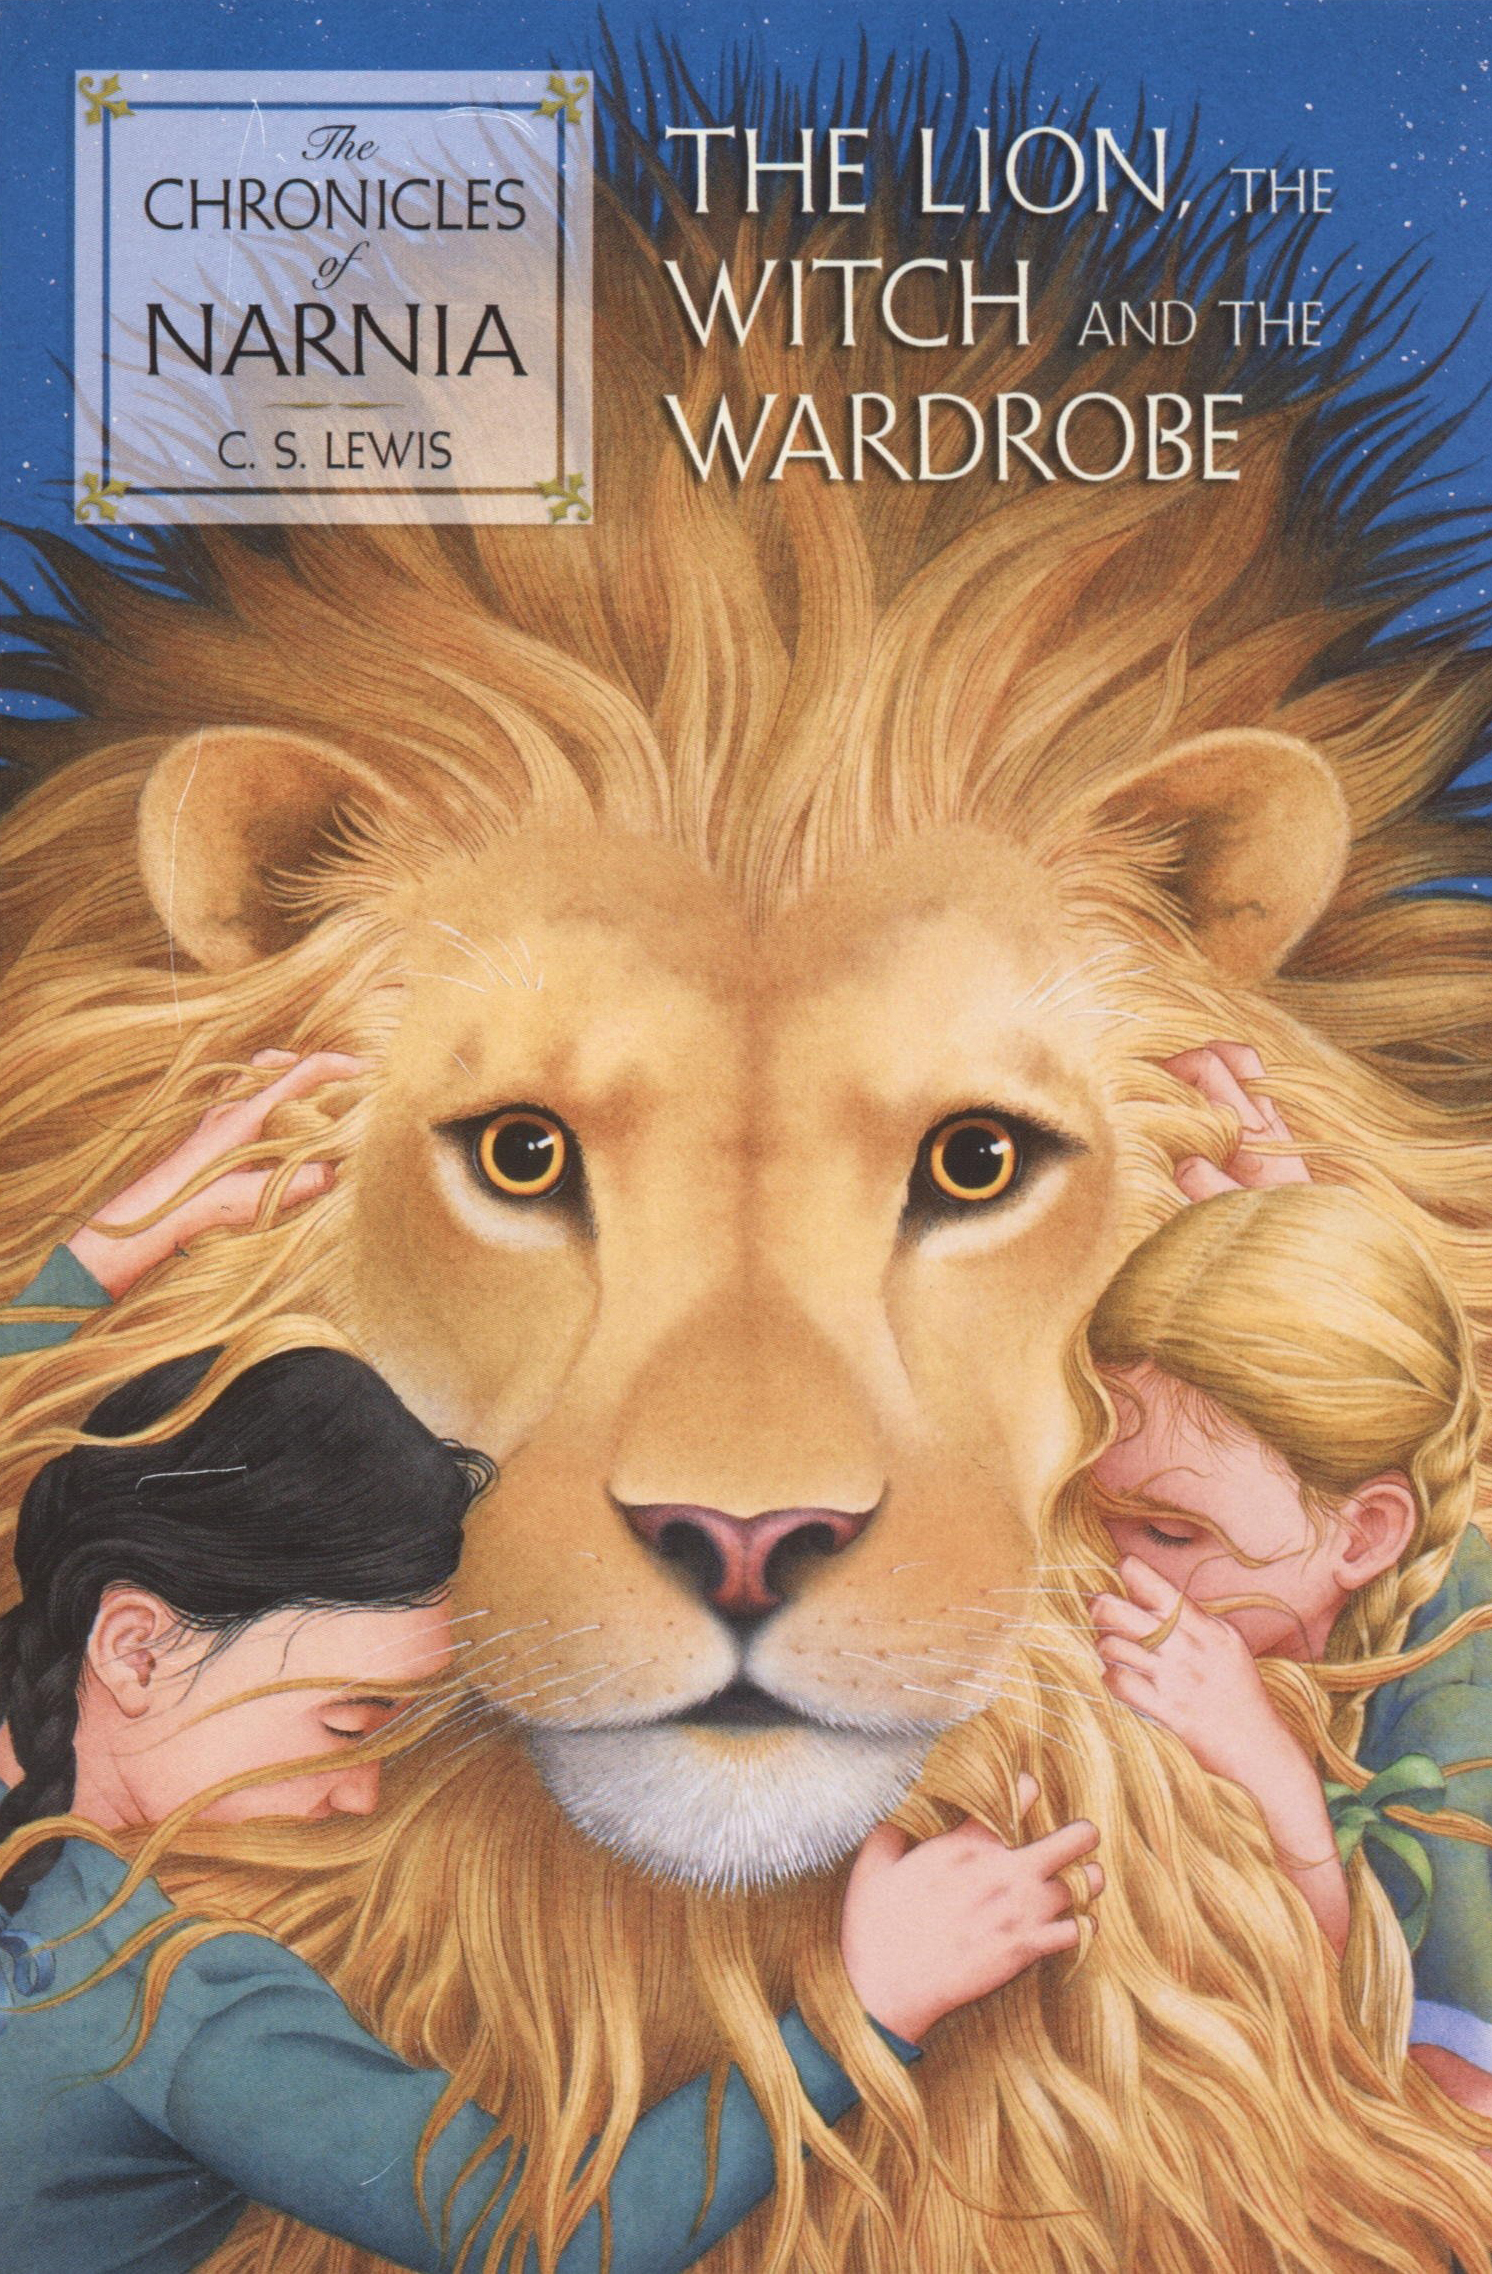 The Lion, the Witch and the Wardrobe by C.S. Lewis                                The moment when Lucy Pevensie pushes her way past those old fur coats and through the wardrobe into Narnia is ground zero for modern fantasy: instead of splitting the atom Lewis splits the world, into dreary ration-book wartime England and the fresh, exciting, enchanted world of Narnia. Lewis's books teem with psychological insight and writerly craft: he wrote fantasy using the tools of realism, concretely and precisely, and with a kind of frank honesty barely ever seen in books for children. His blind spots were many—his treatment of women characters is, in places, beyond unfortunate—but what he saw, he saw with the power and clarity of a true visionary.